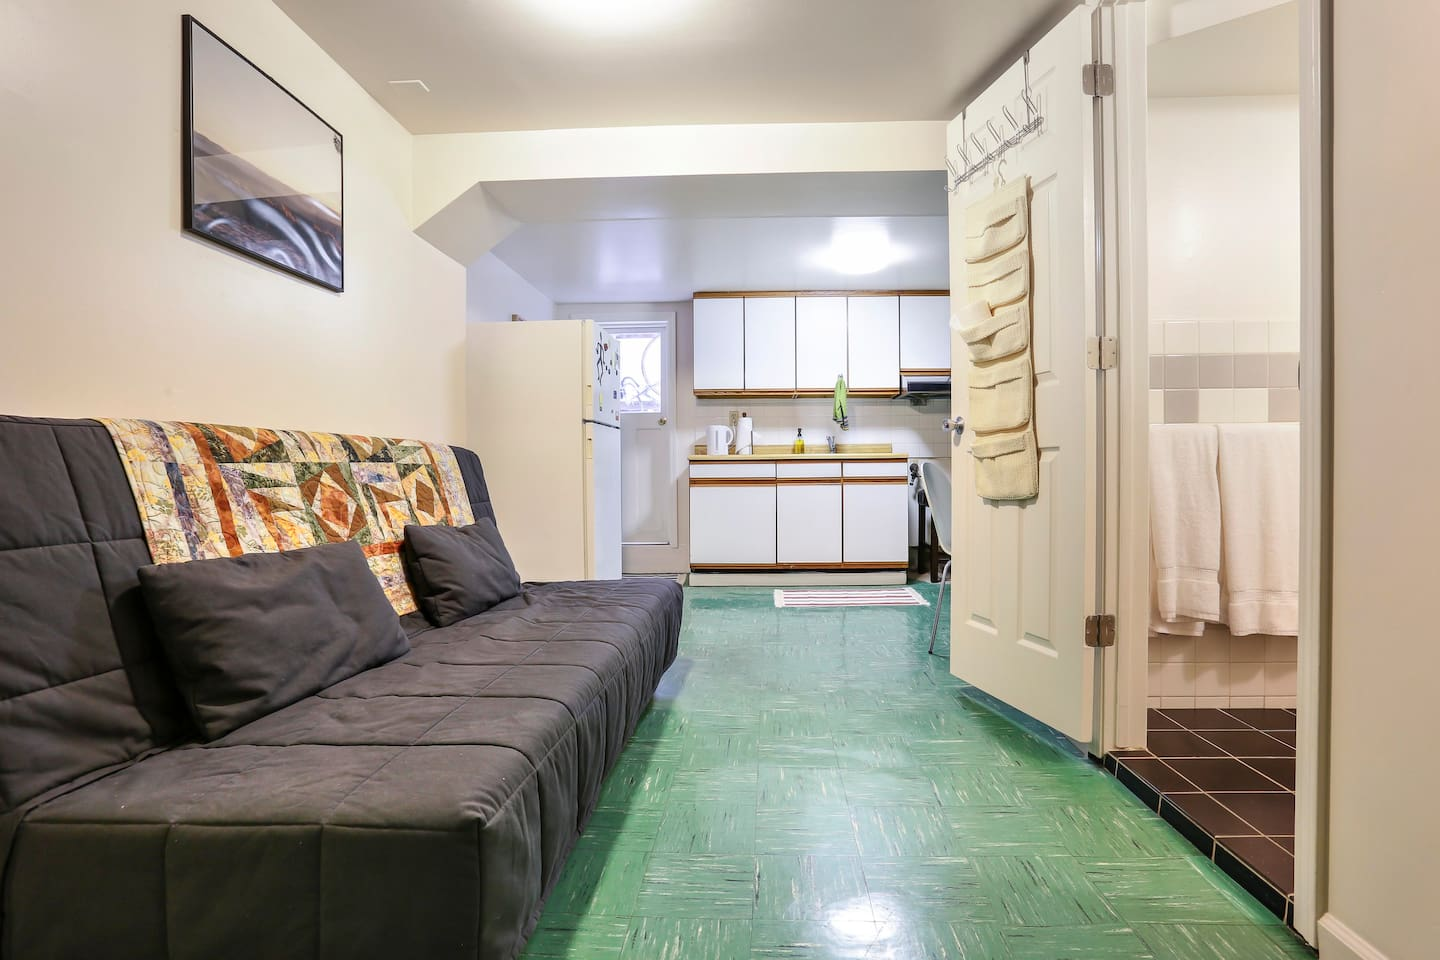 Futon and kitchenette with sink and microwave